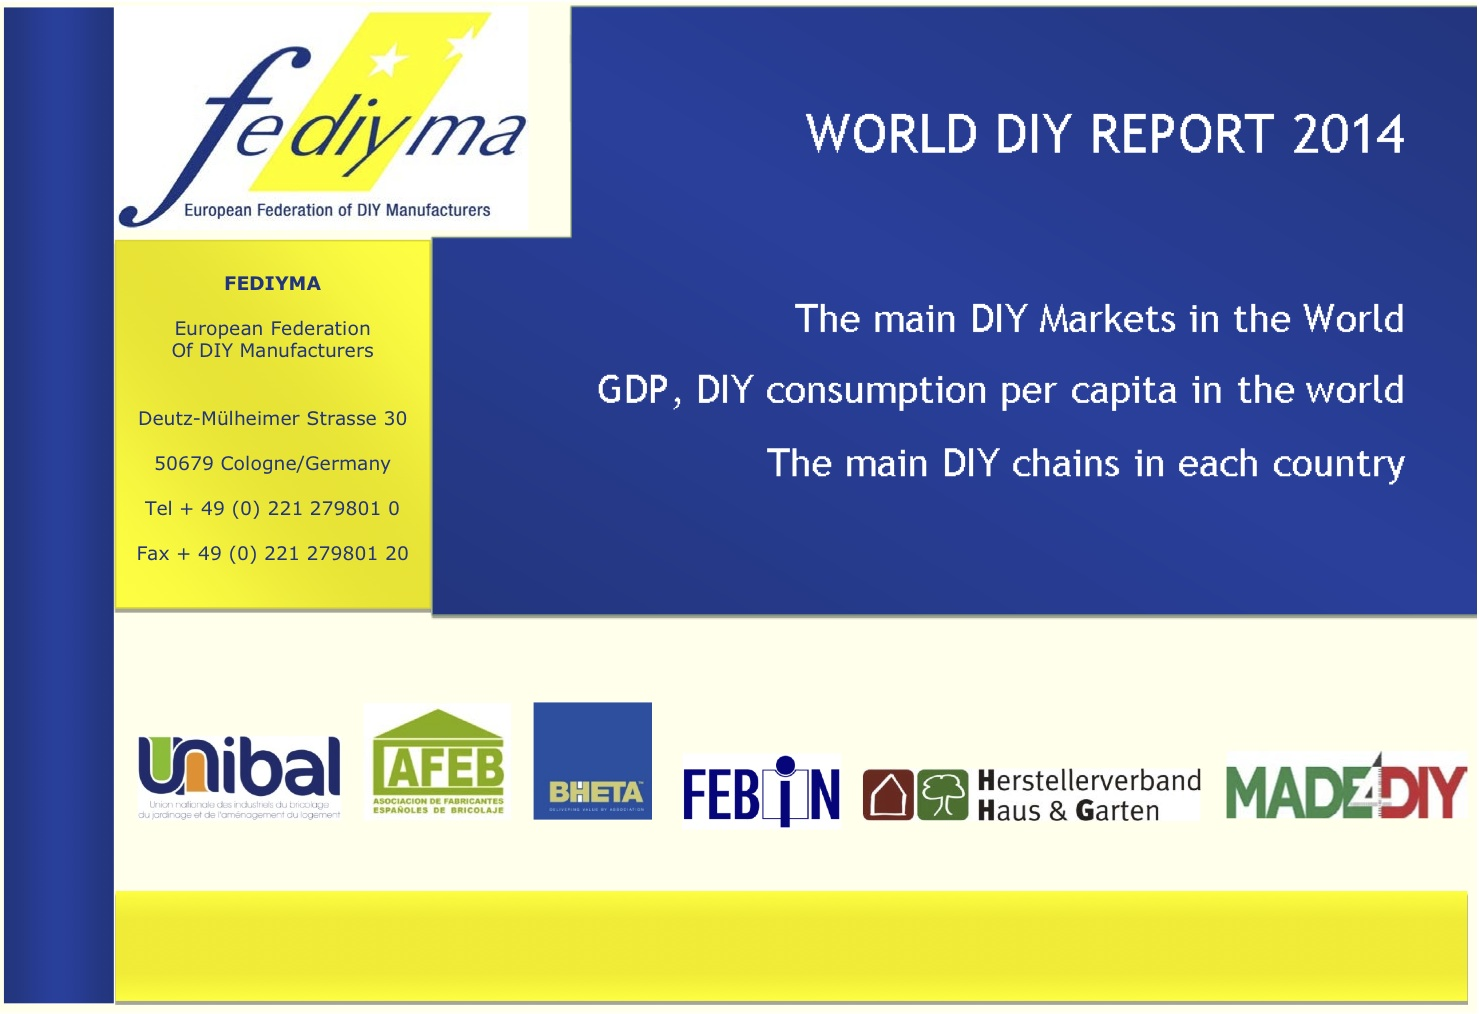 World DIY Report 2014